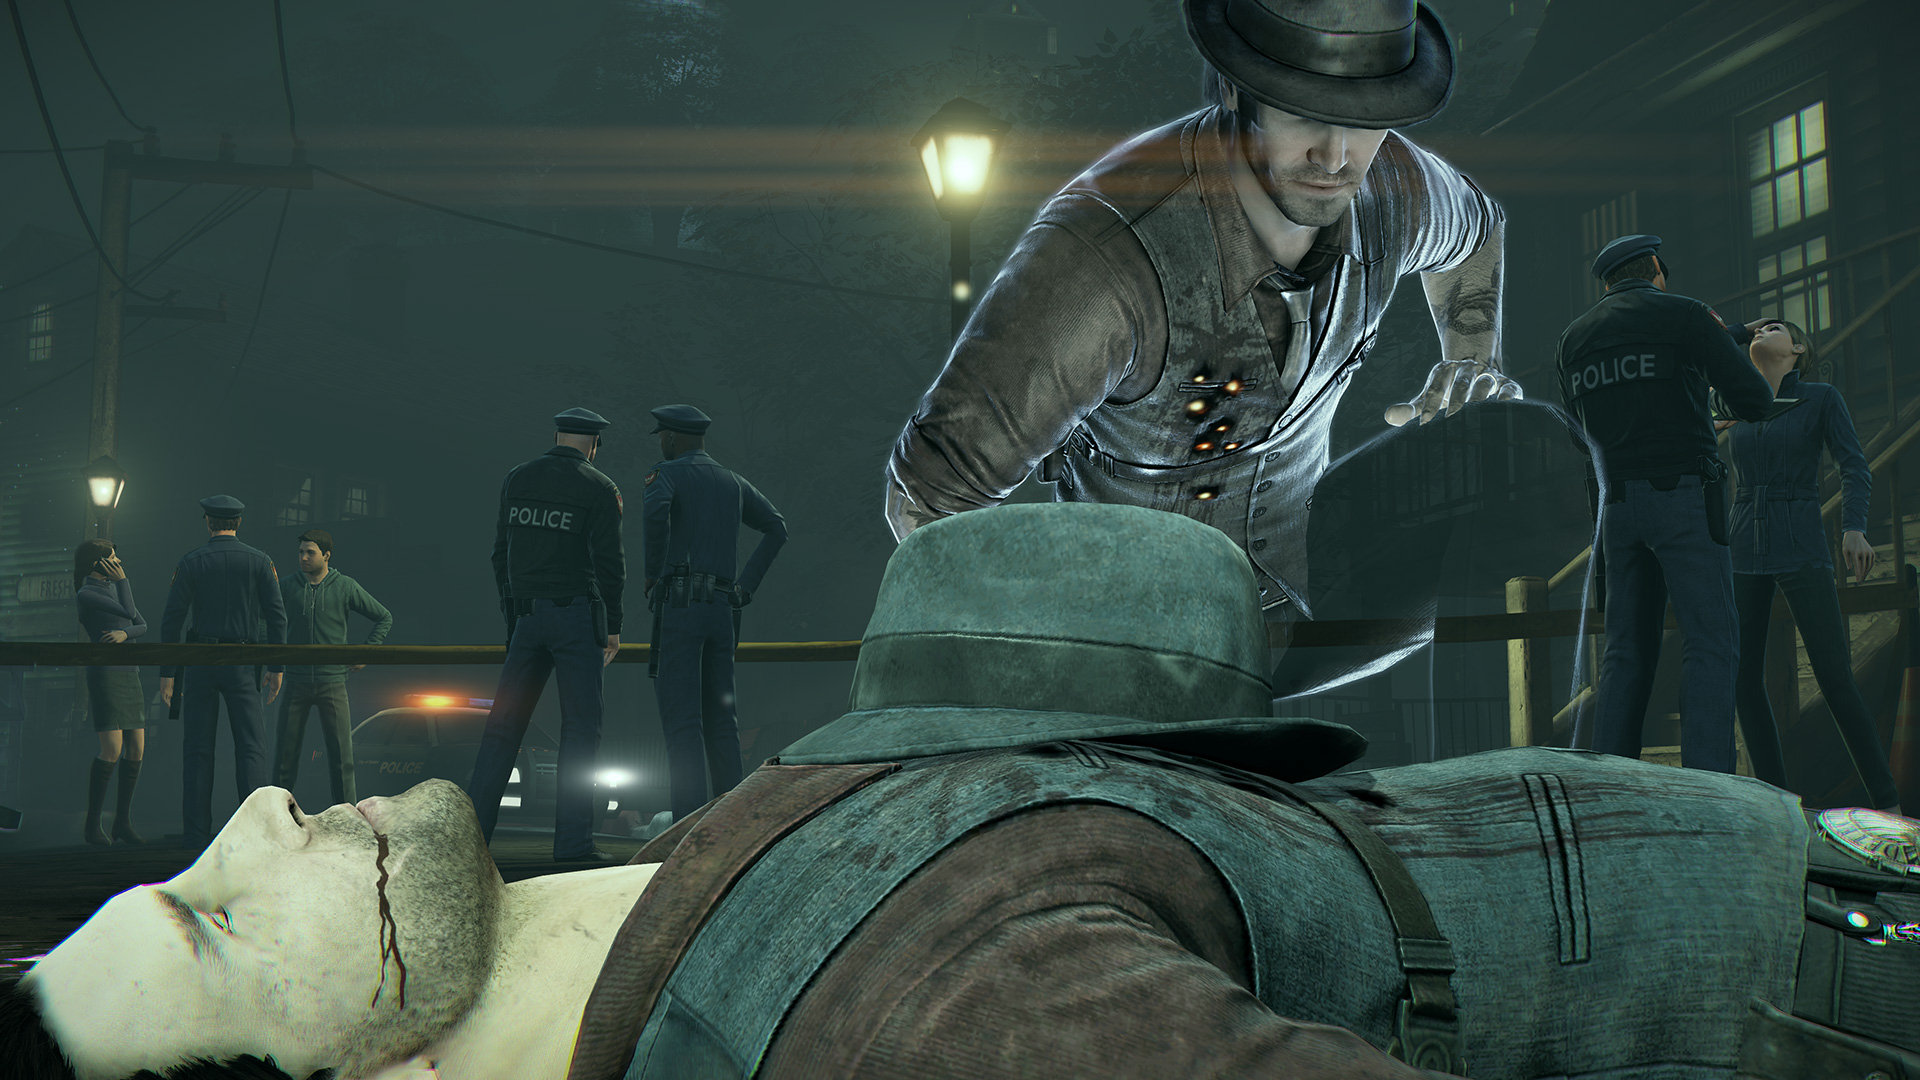 murdered-soul-suspect-shot-02-us-02may14